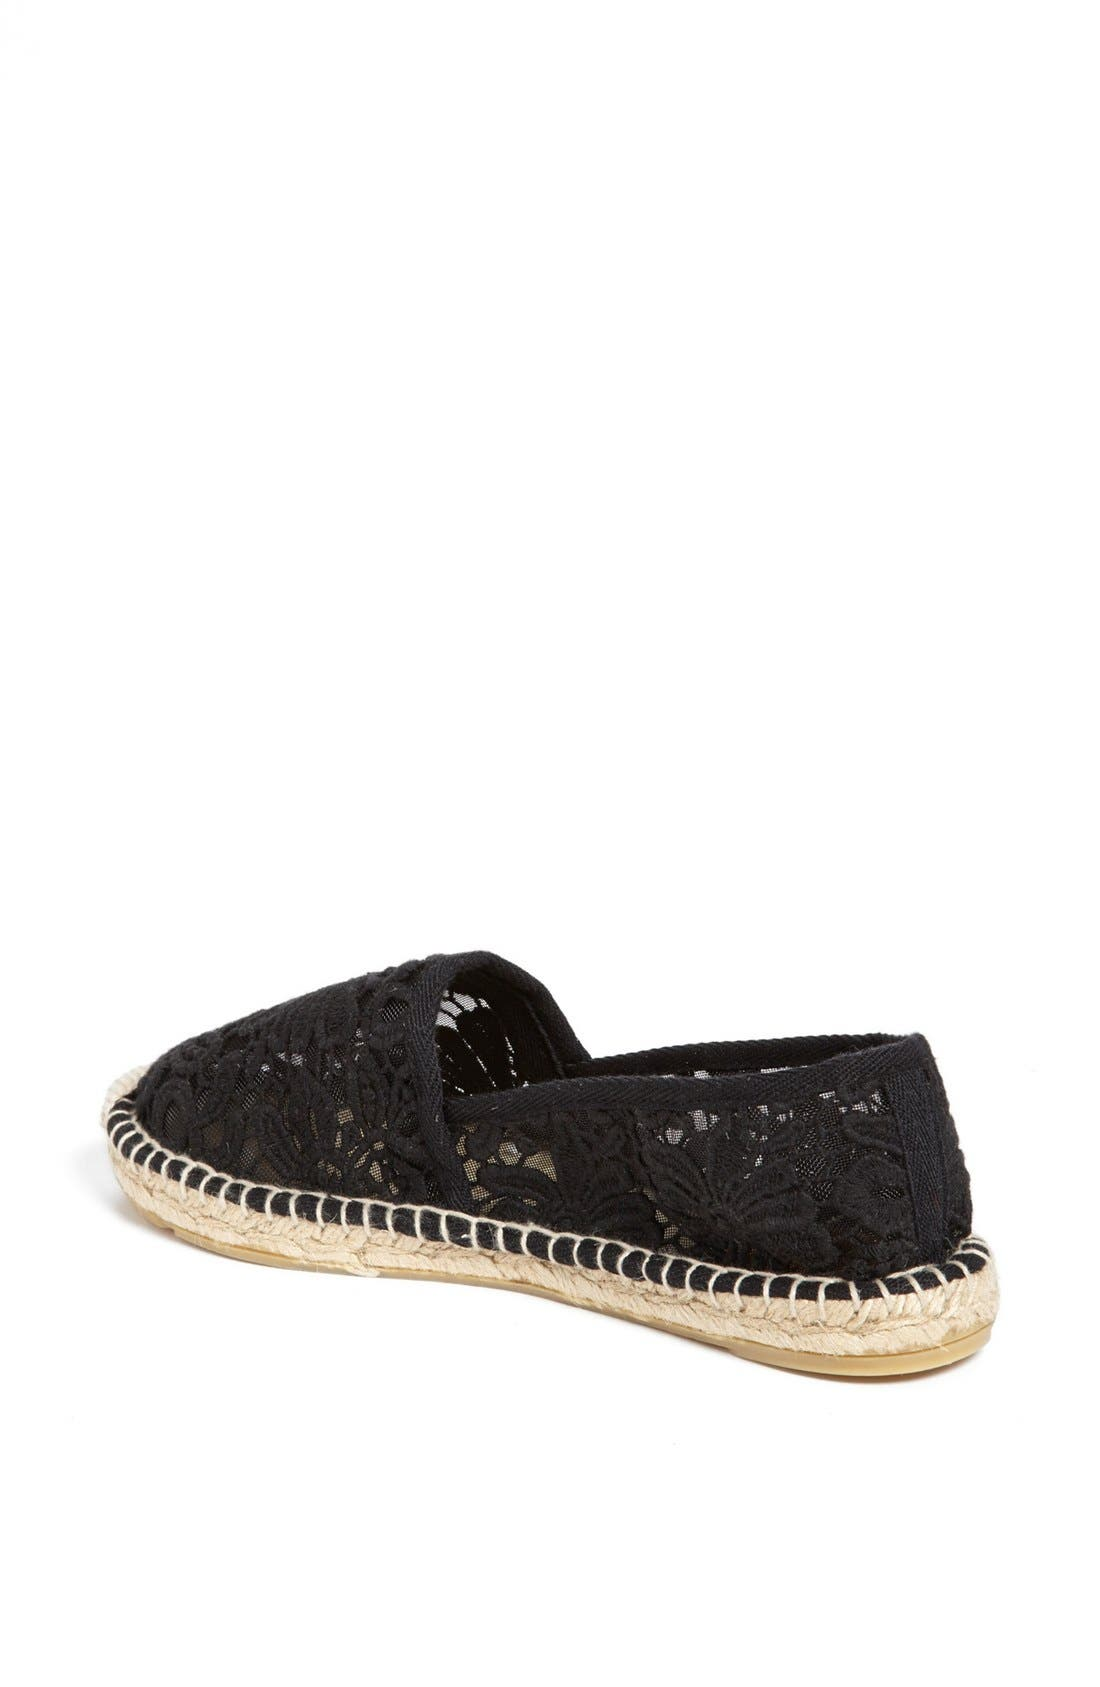 TORY BURCH,                             'Abbe' Espadrille,                             Alternate thumbnail 2, color,                             001